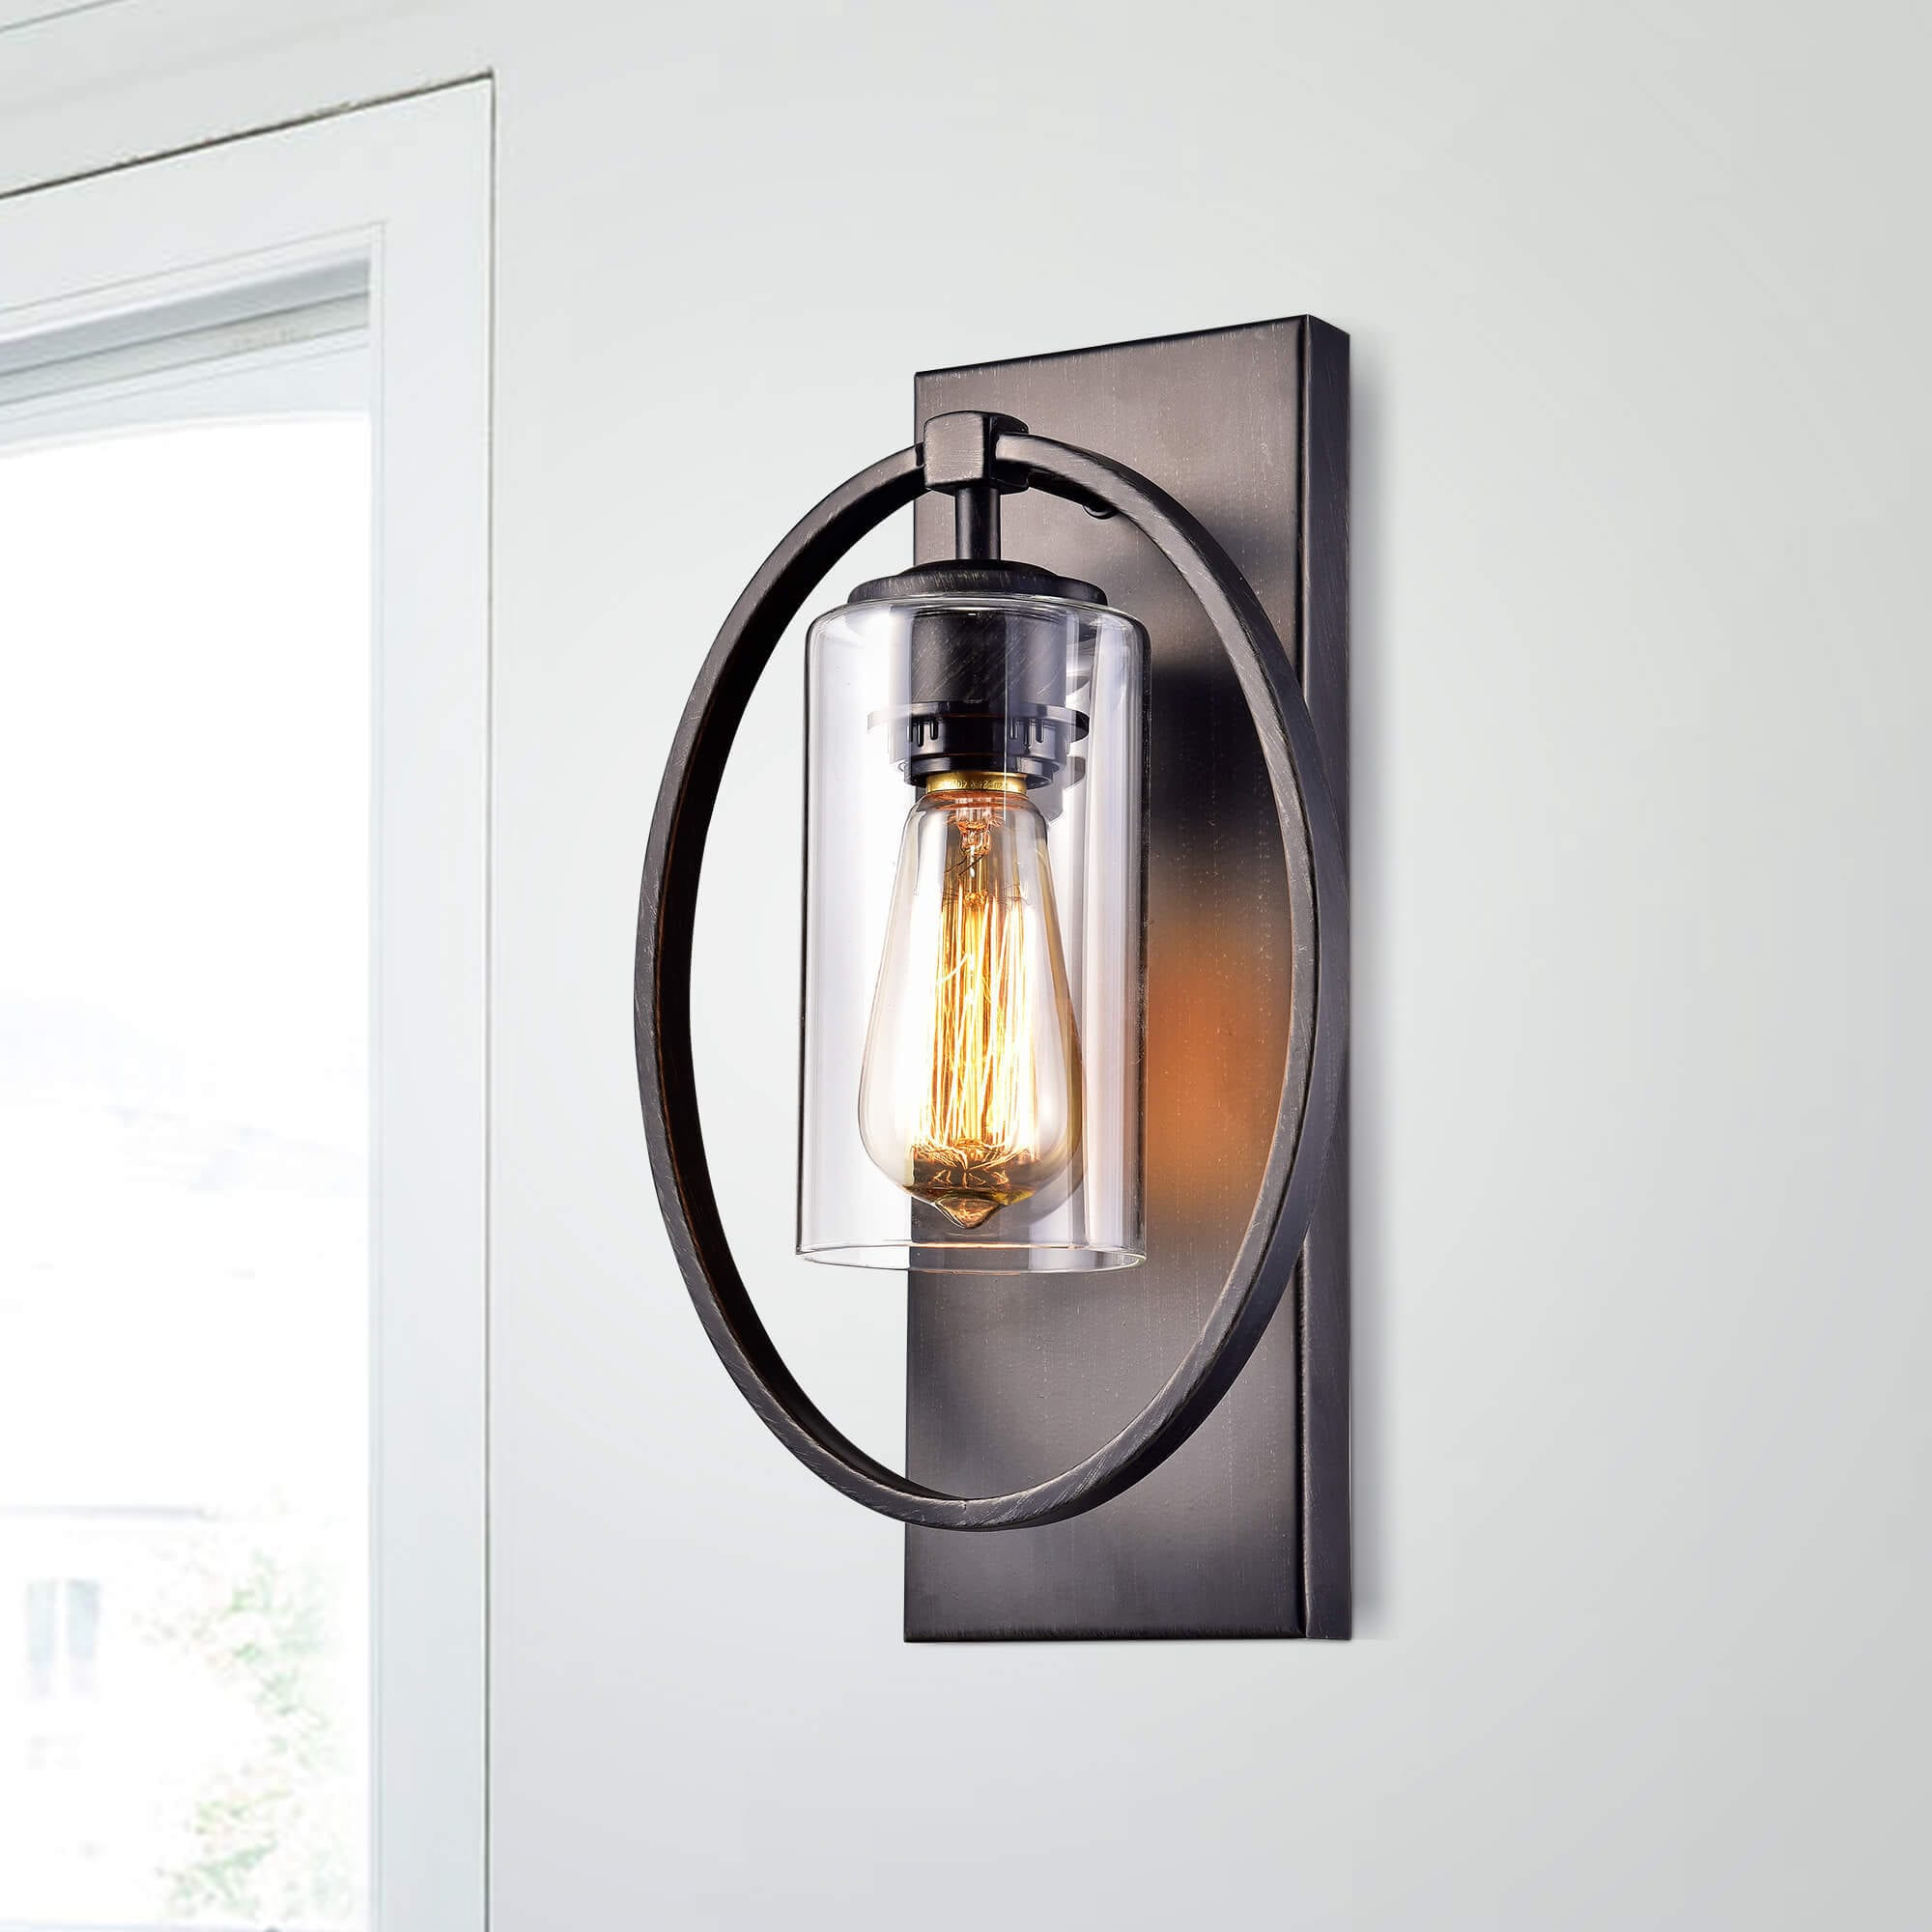 Anastasia single light wall sconce with clear glass shade free anastasia single light wall sconce with clear glass shade free shipping today overstock 24245872 mozeypictures Images